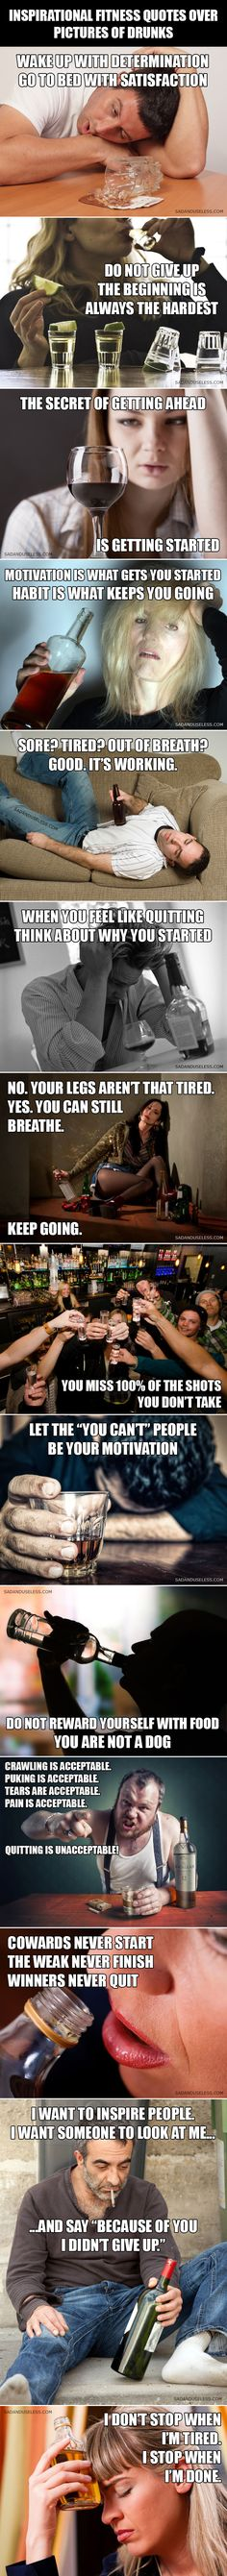 Inspirational fitness quotes over pictures of drunk people